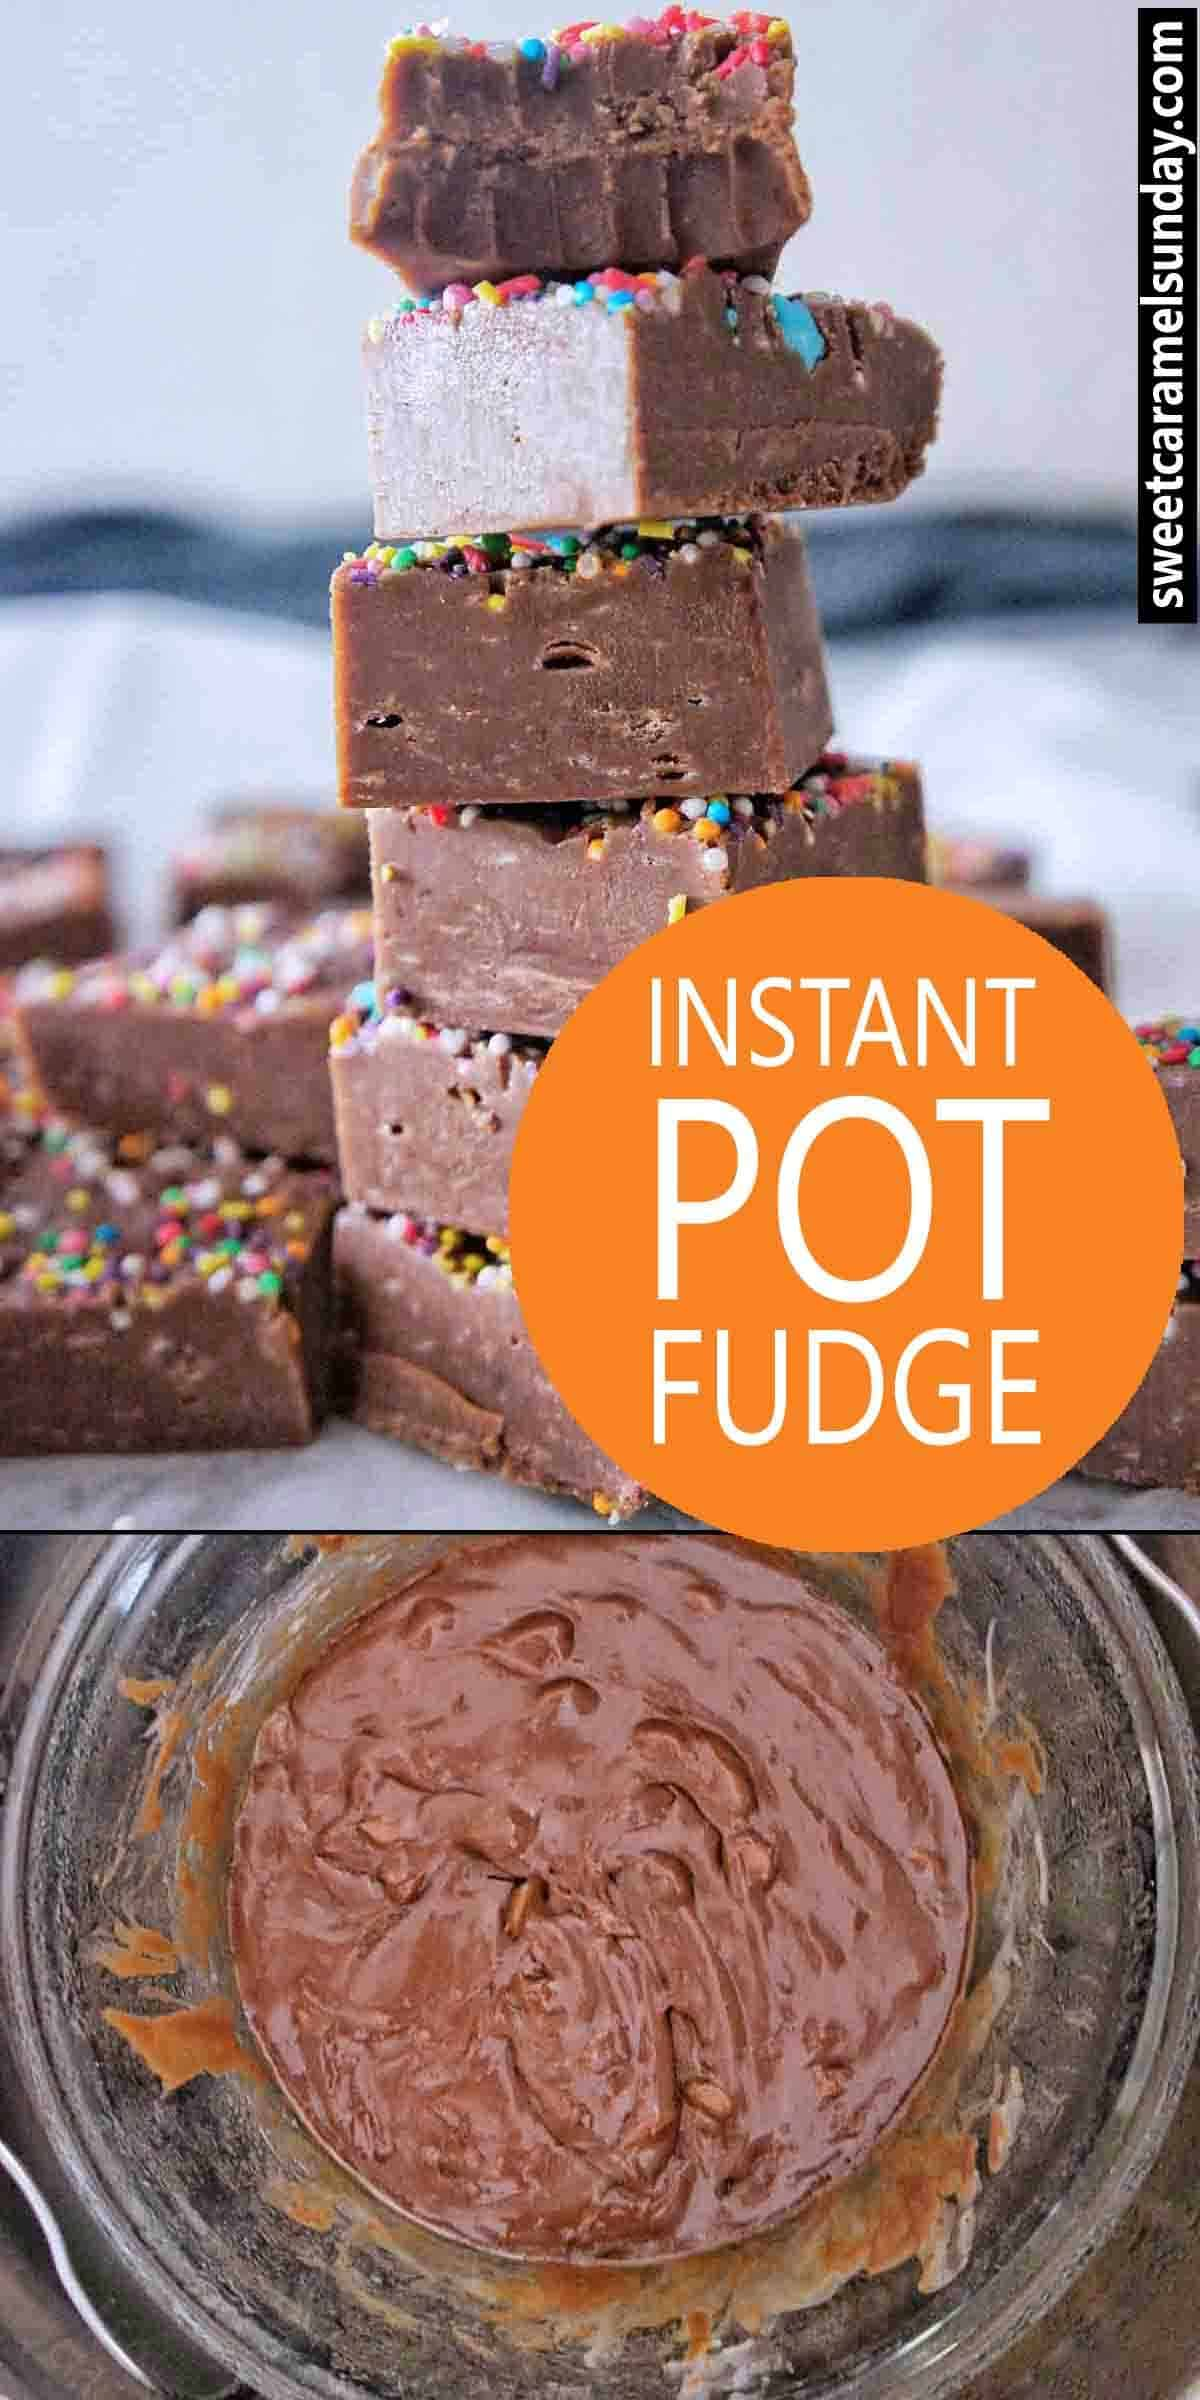 Instant Pot Fudge with text overlay